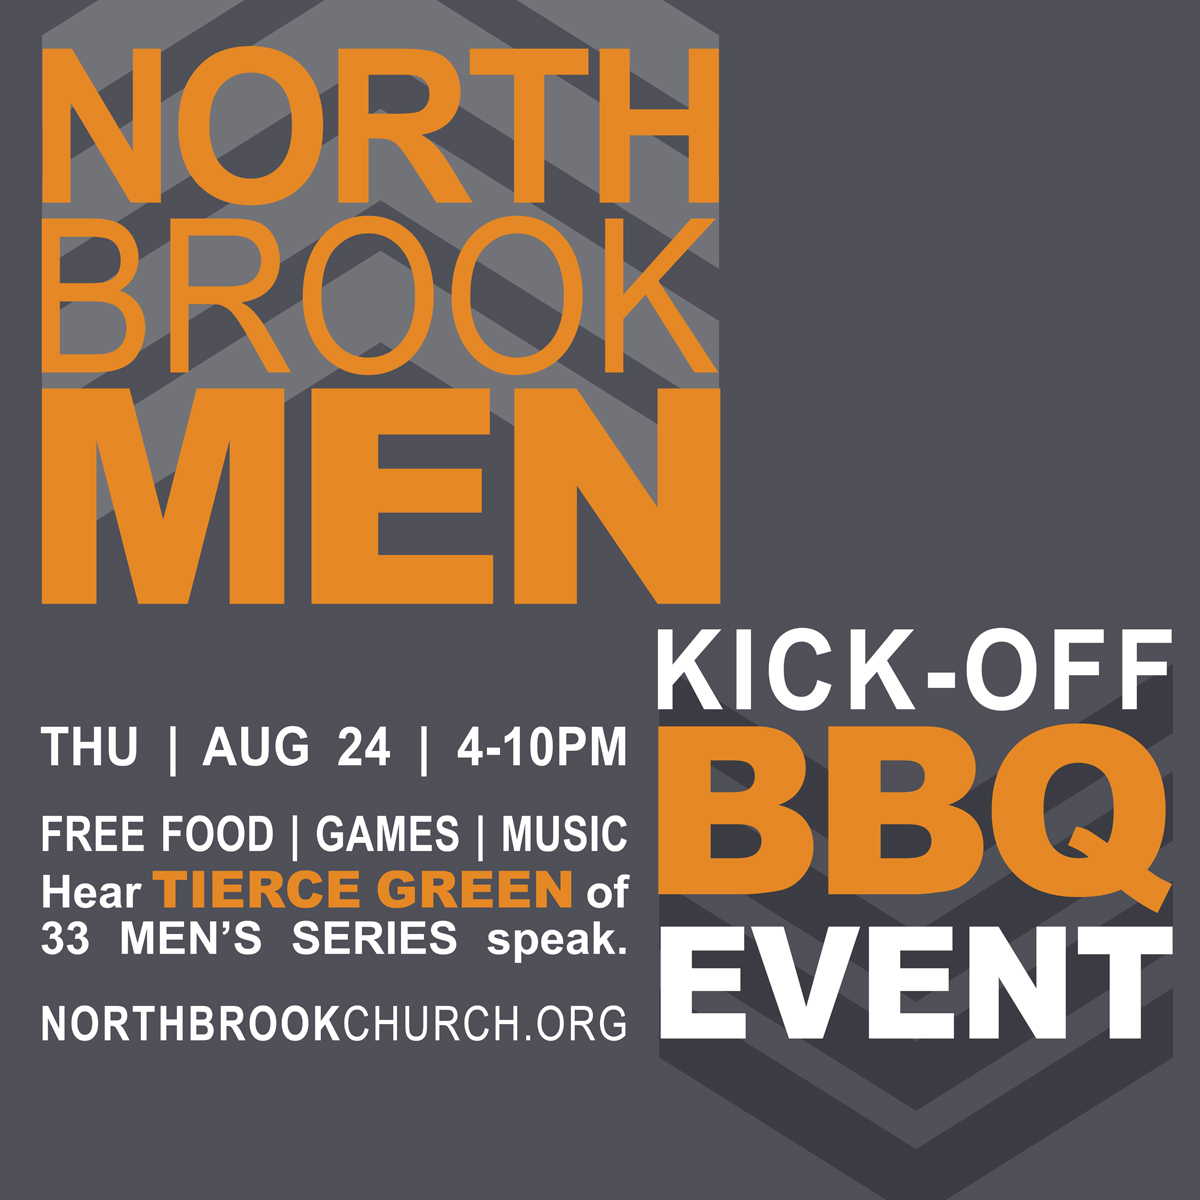 Norhbrook Men's Ministry KICK-OFF BBQ Event | Thursday | August 24th | 4- 10PM